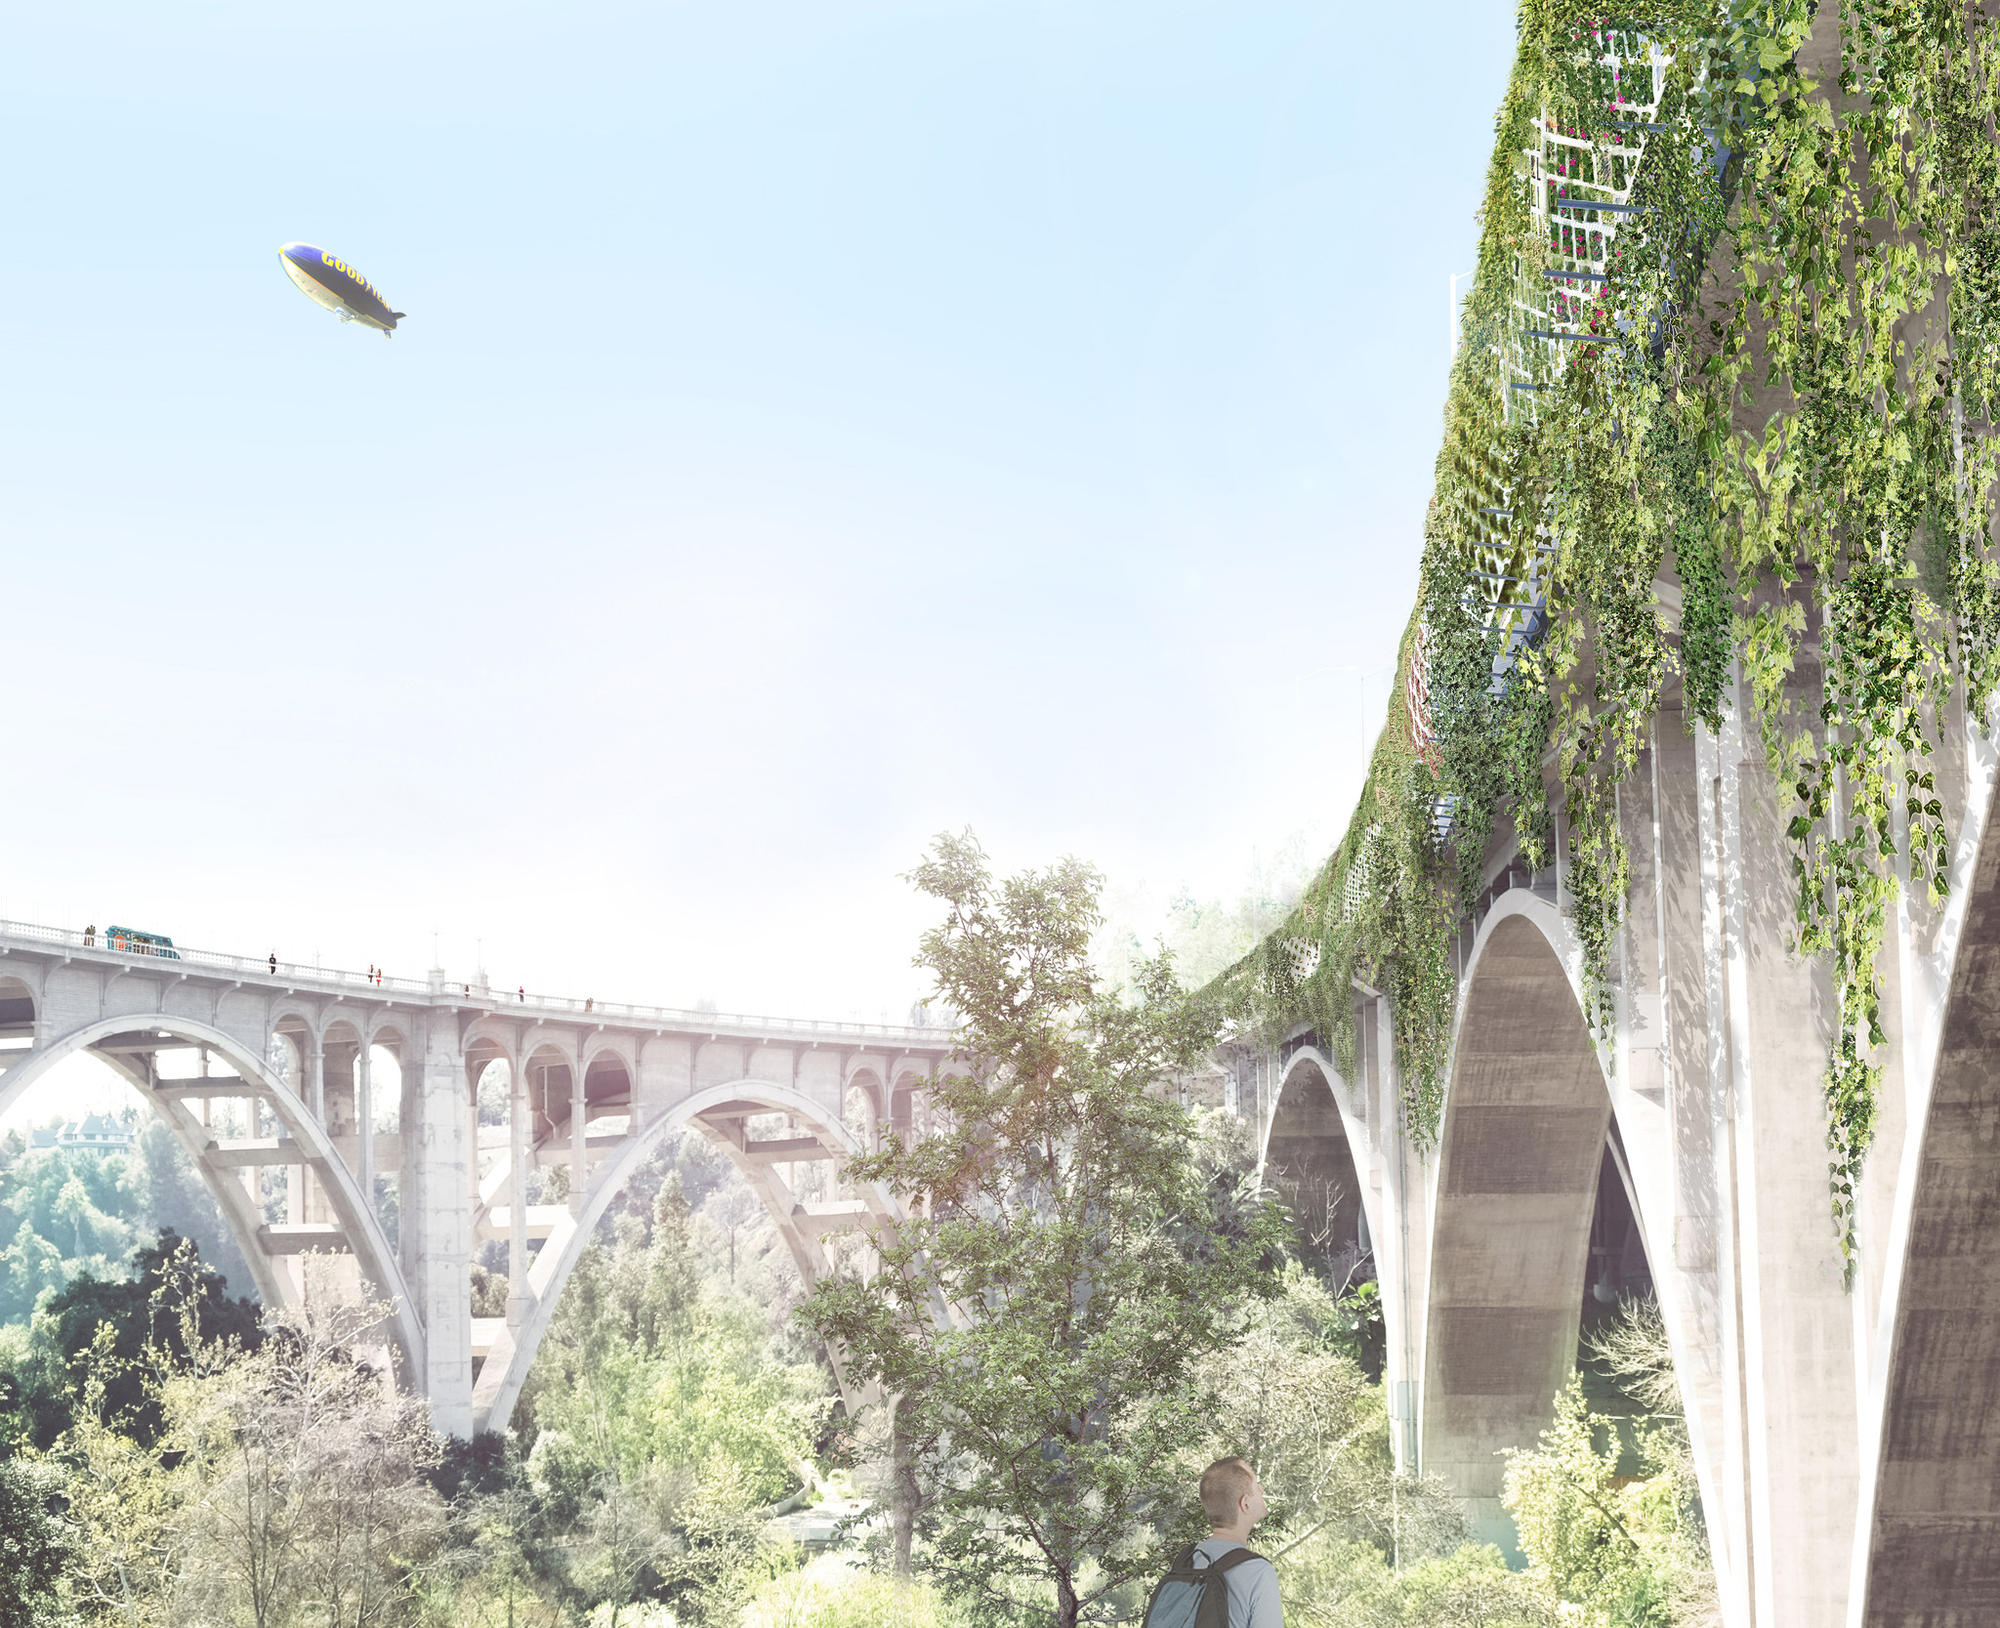 A rendering view from below of architect Michael Maltzan's plan to wrap the 134 Freeway as it crosses the Arroyo Seco in Pasadena with a tunnel-like form.